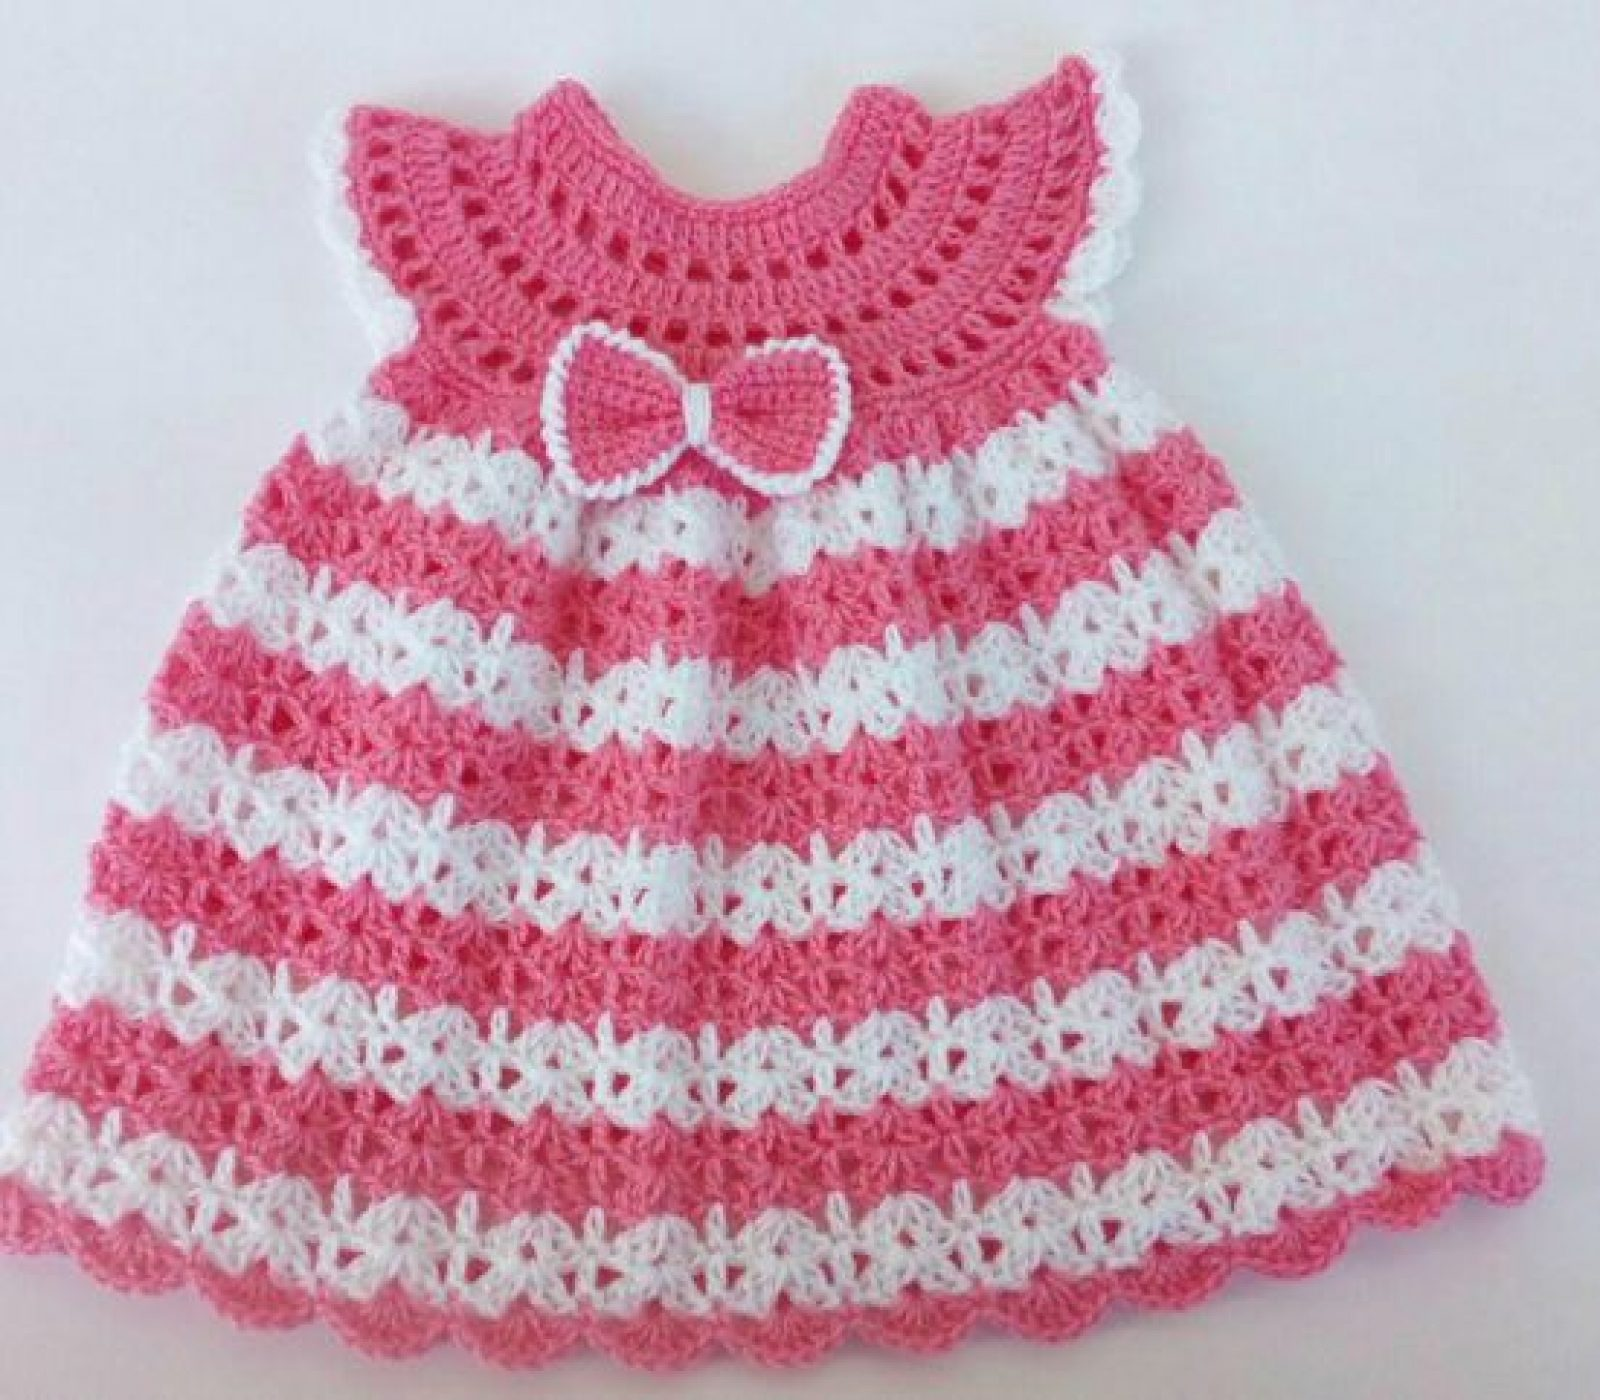 The Pink Crochet Baby Dress – Free Pattern for Cute Baby Girls!\